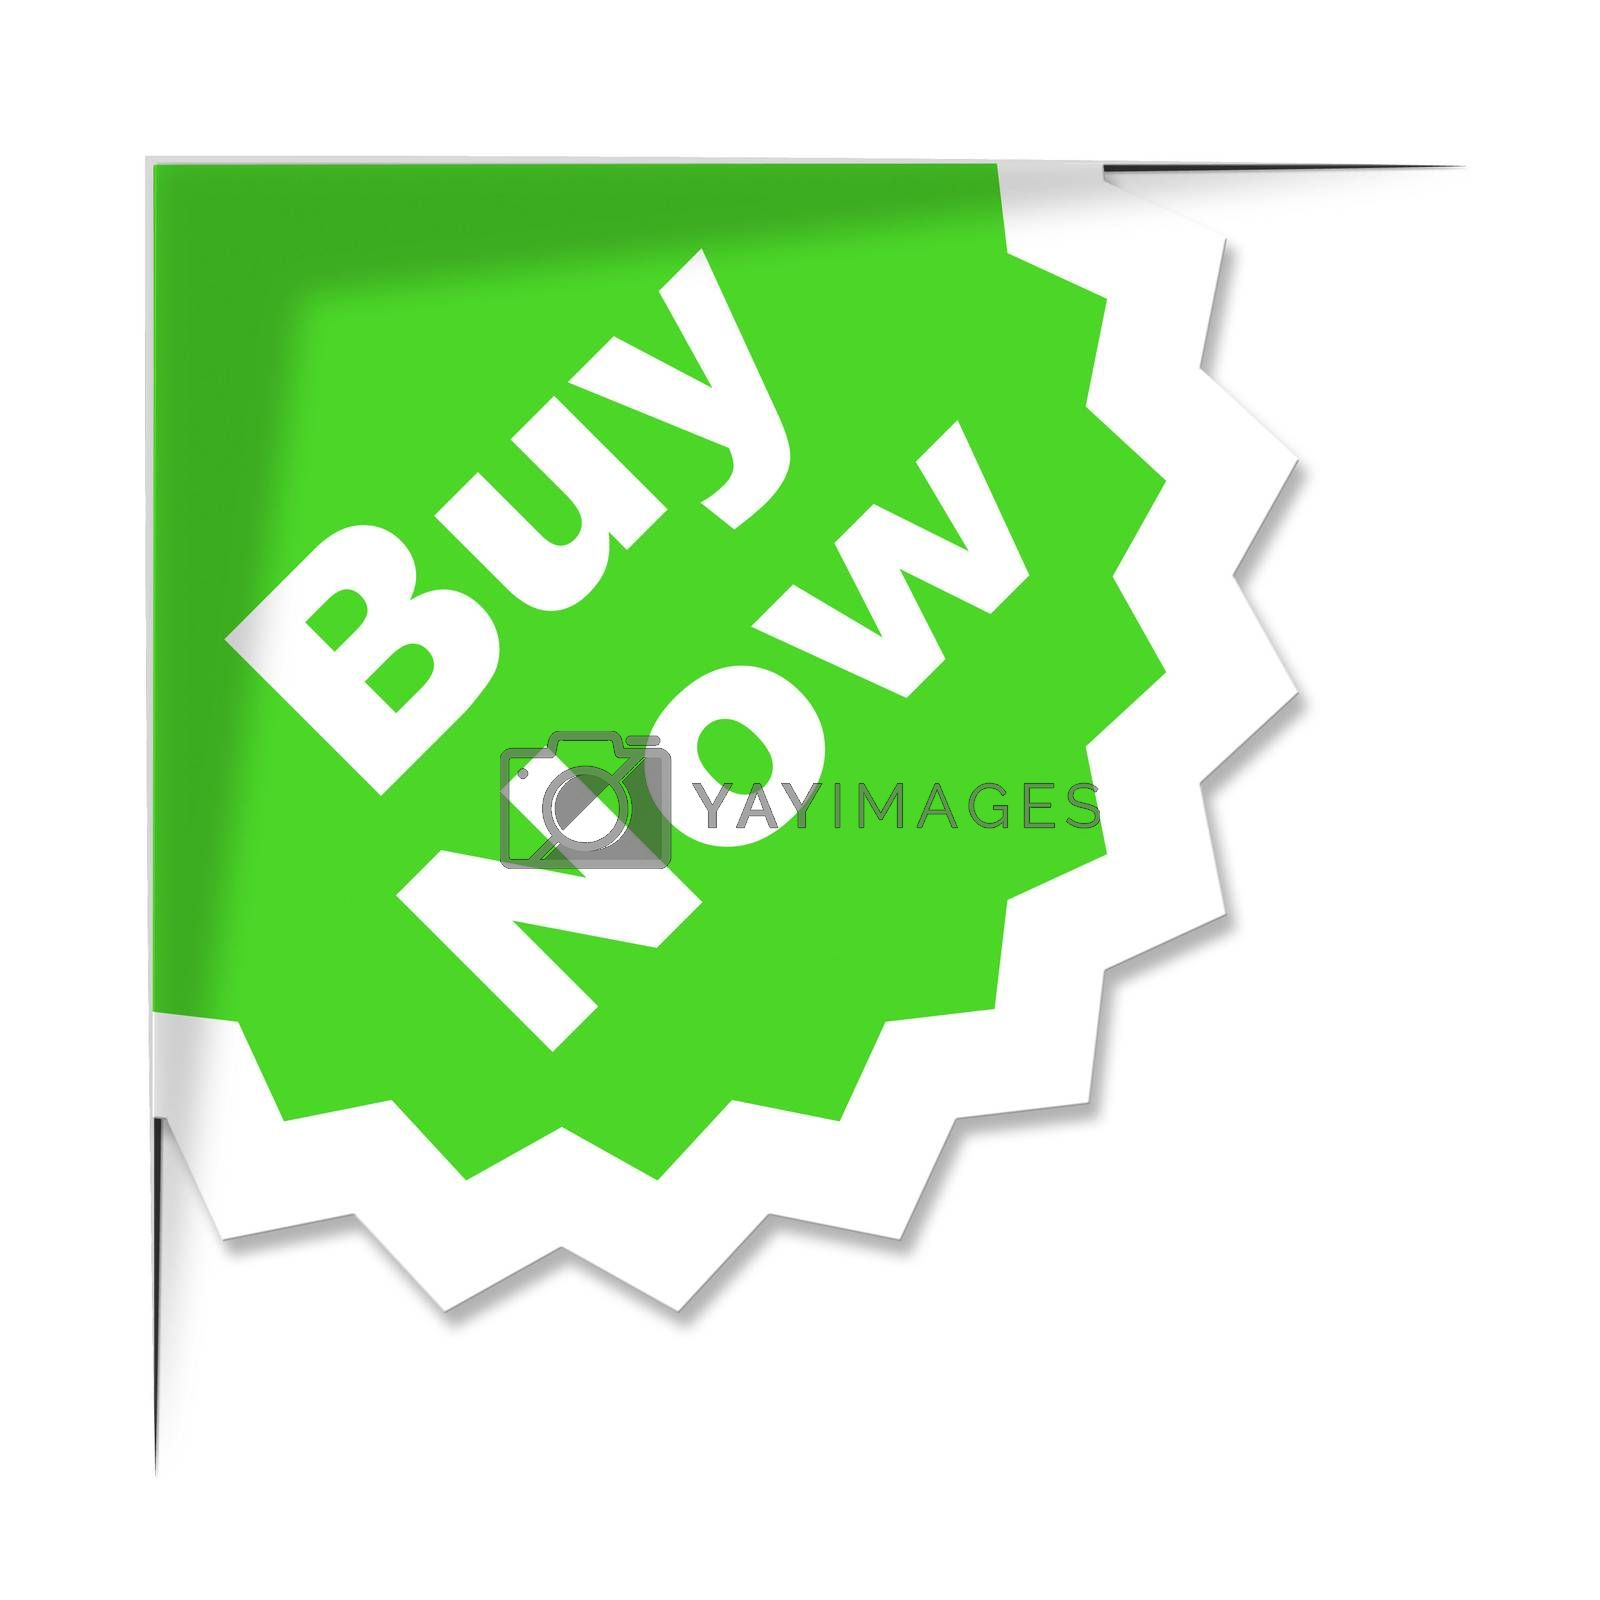 Buy Now Label Indicates At This Time And Buyer by stuartmiles